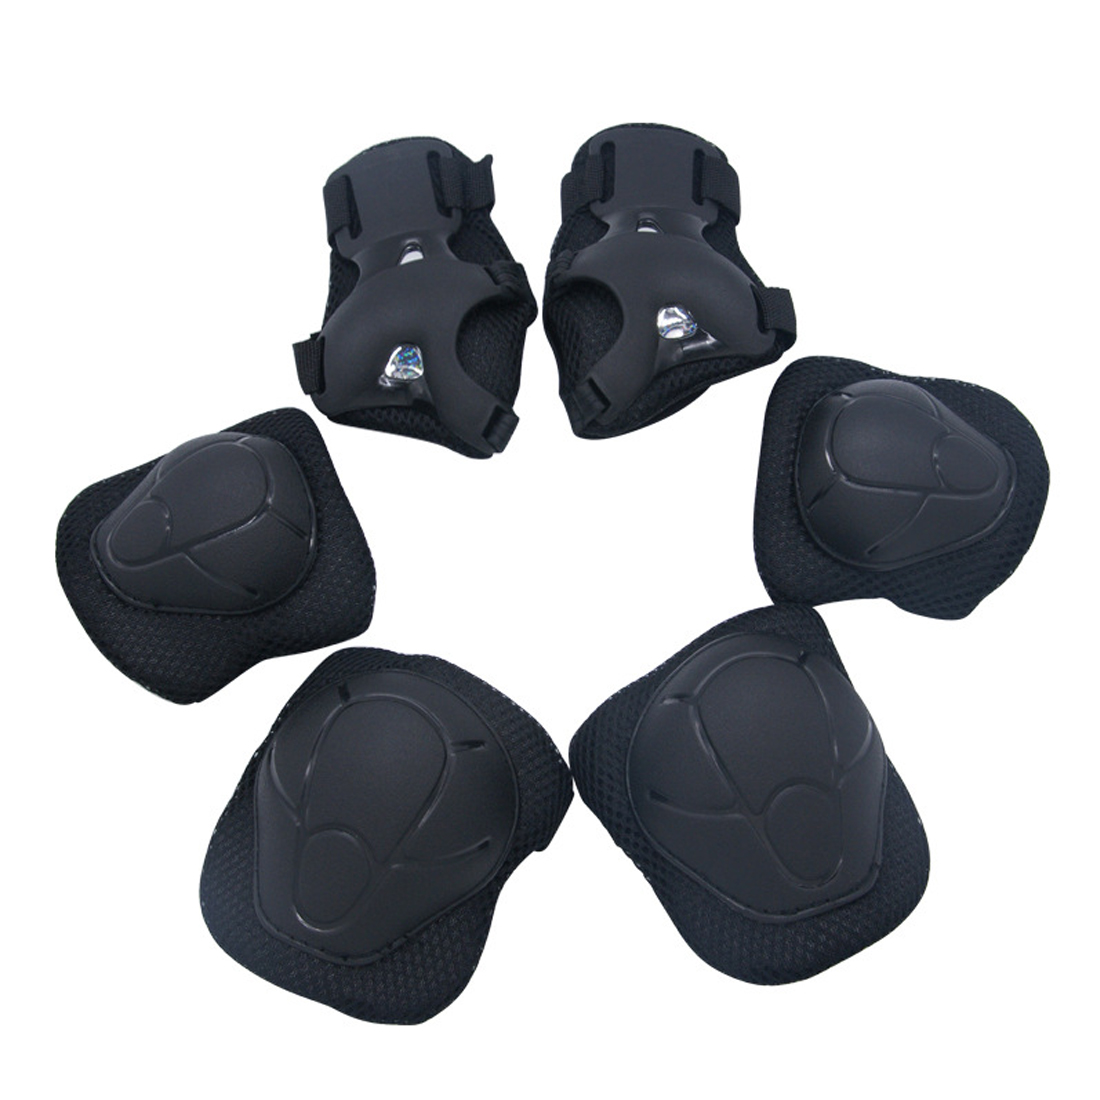 6 Set protective Set joelheira Elbow Pads Wrist Protector Protection for Children Kids Scooter Cycling Roller Skating